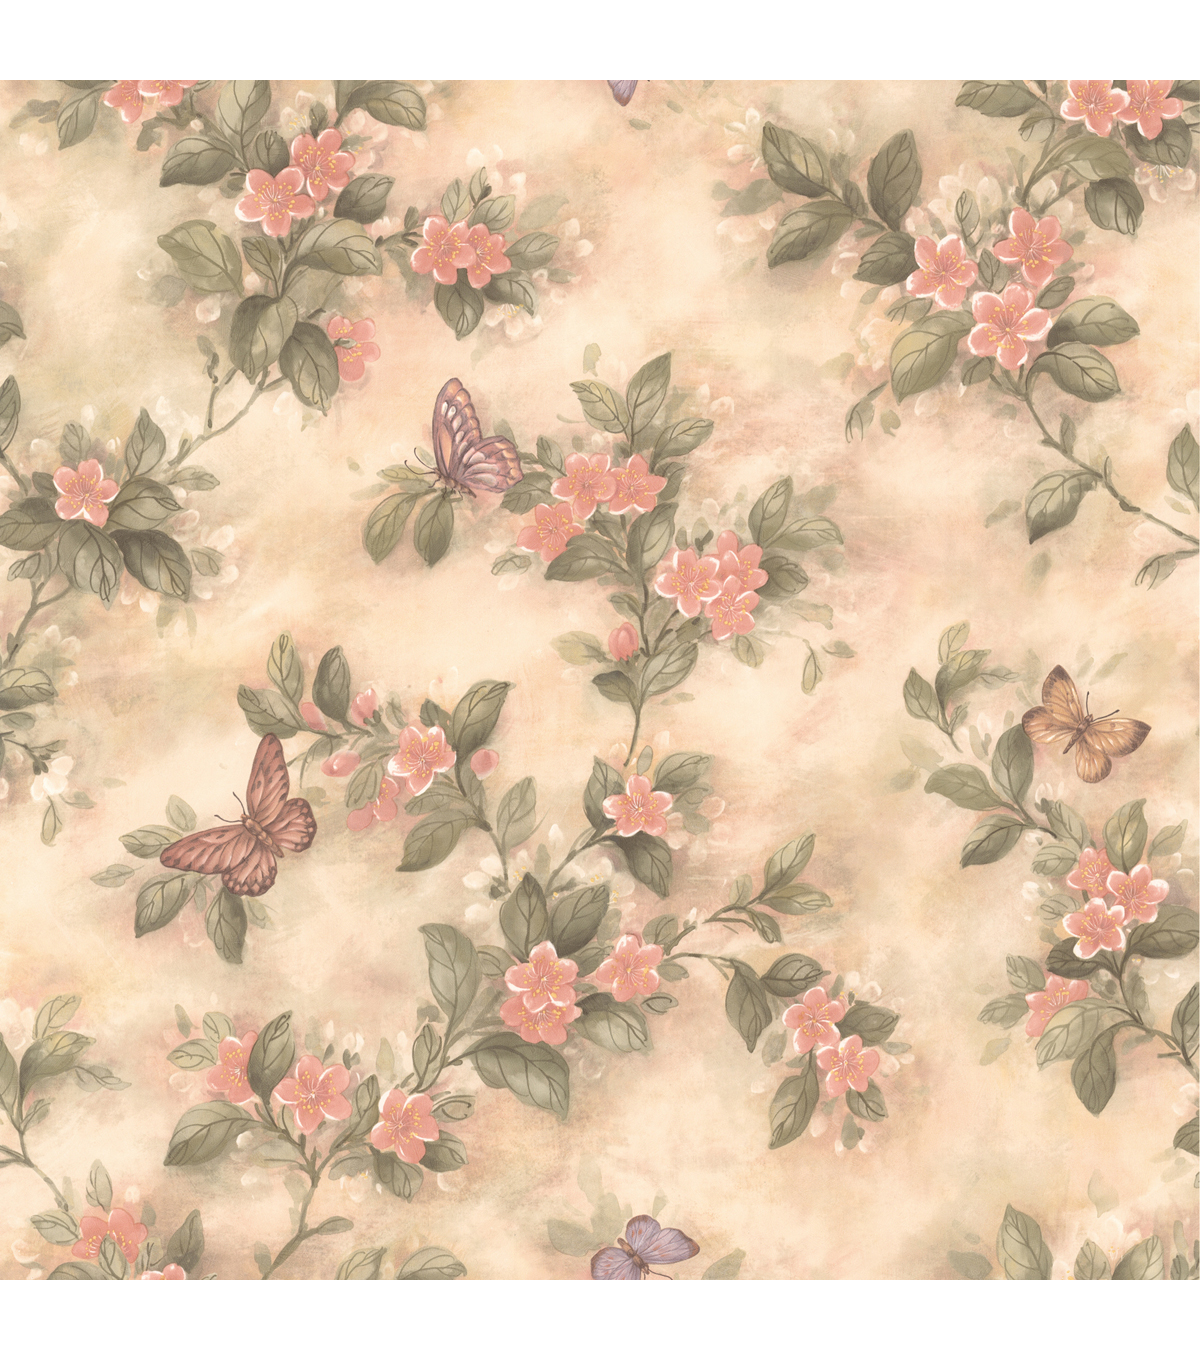 Mariposa Pink Butterfly And Floral Trail Wallpaper Sample